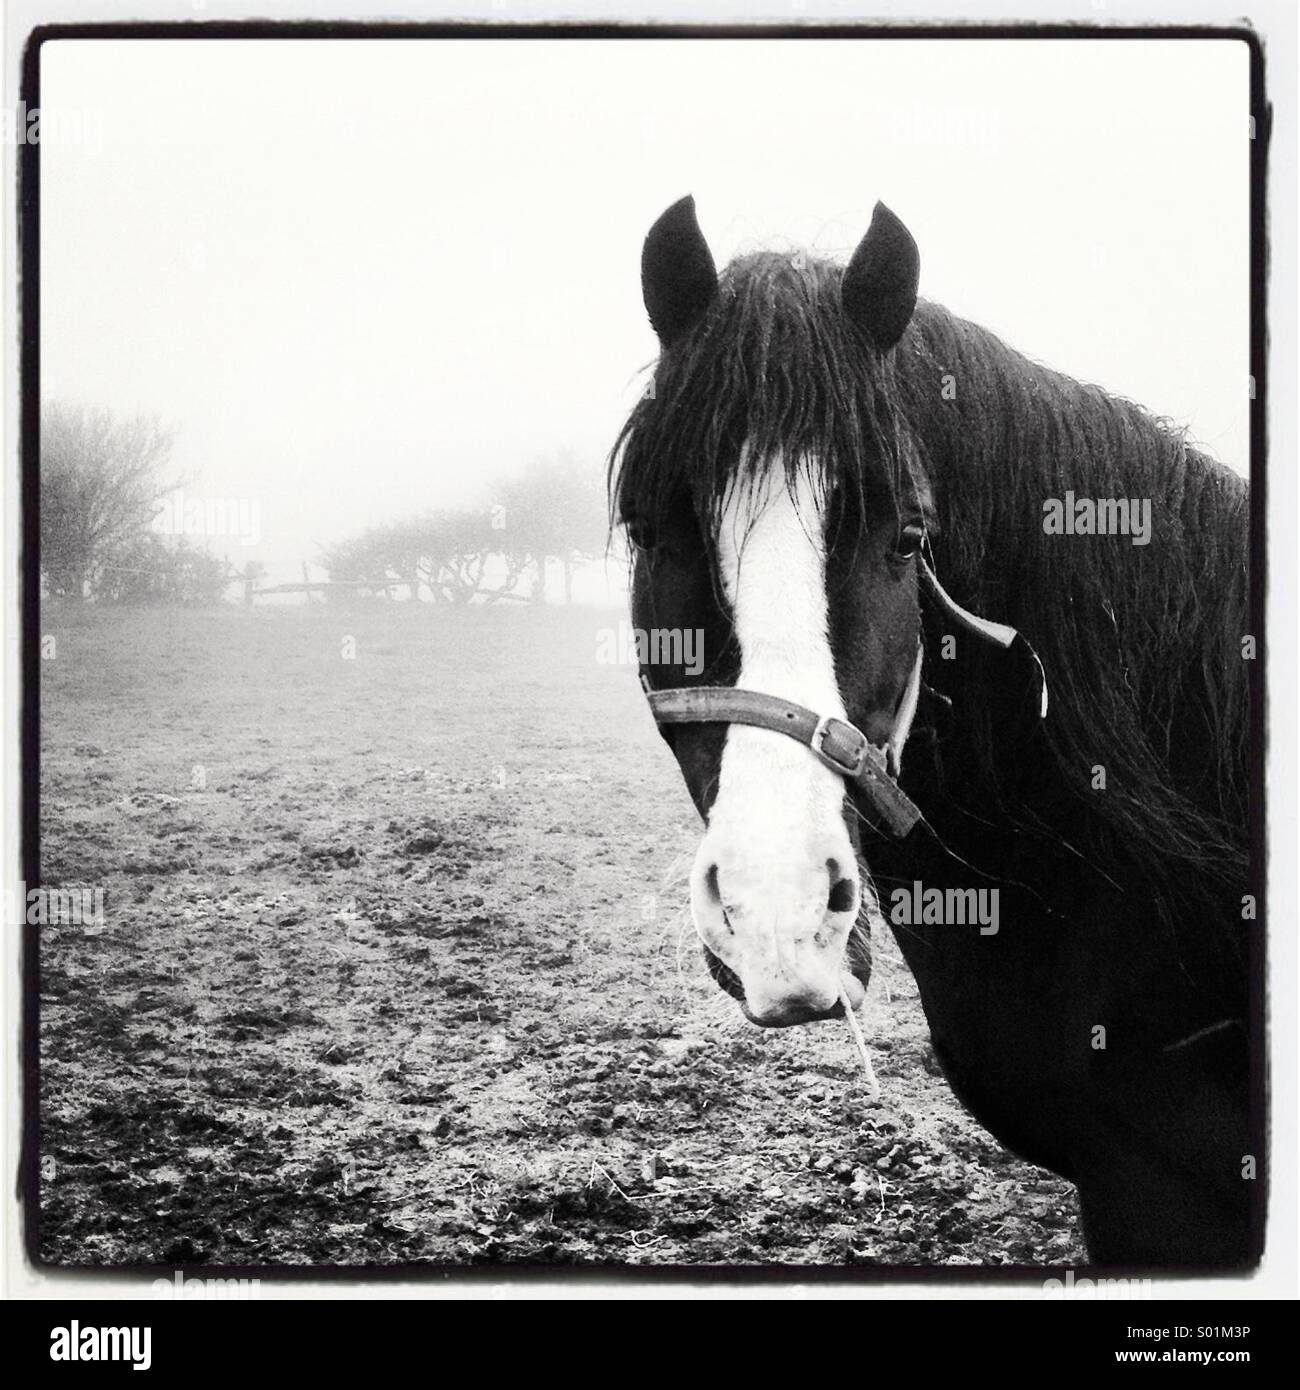 Black and white horse stood in misty field - Stock Image